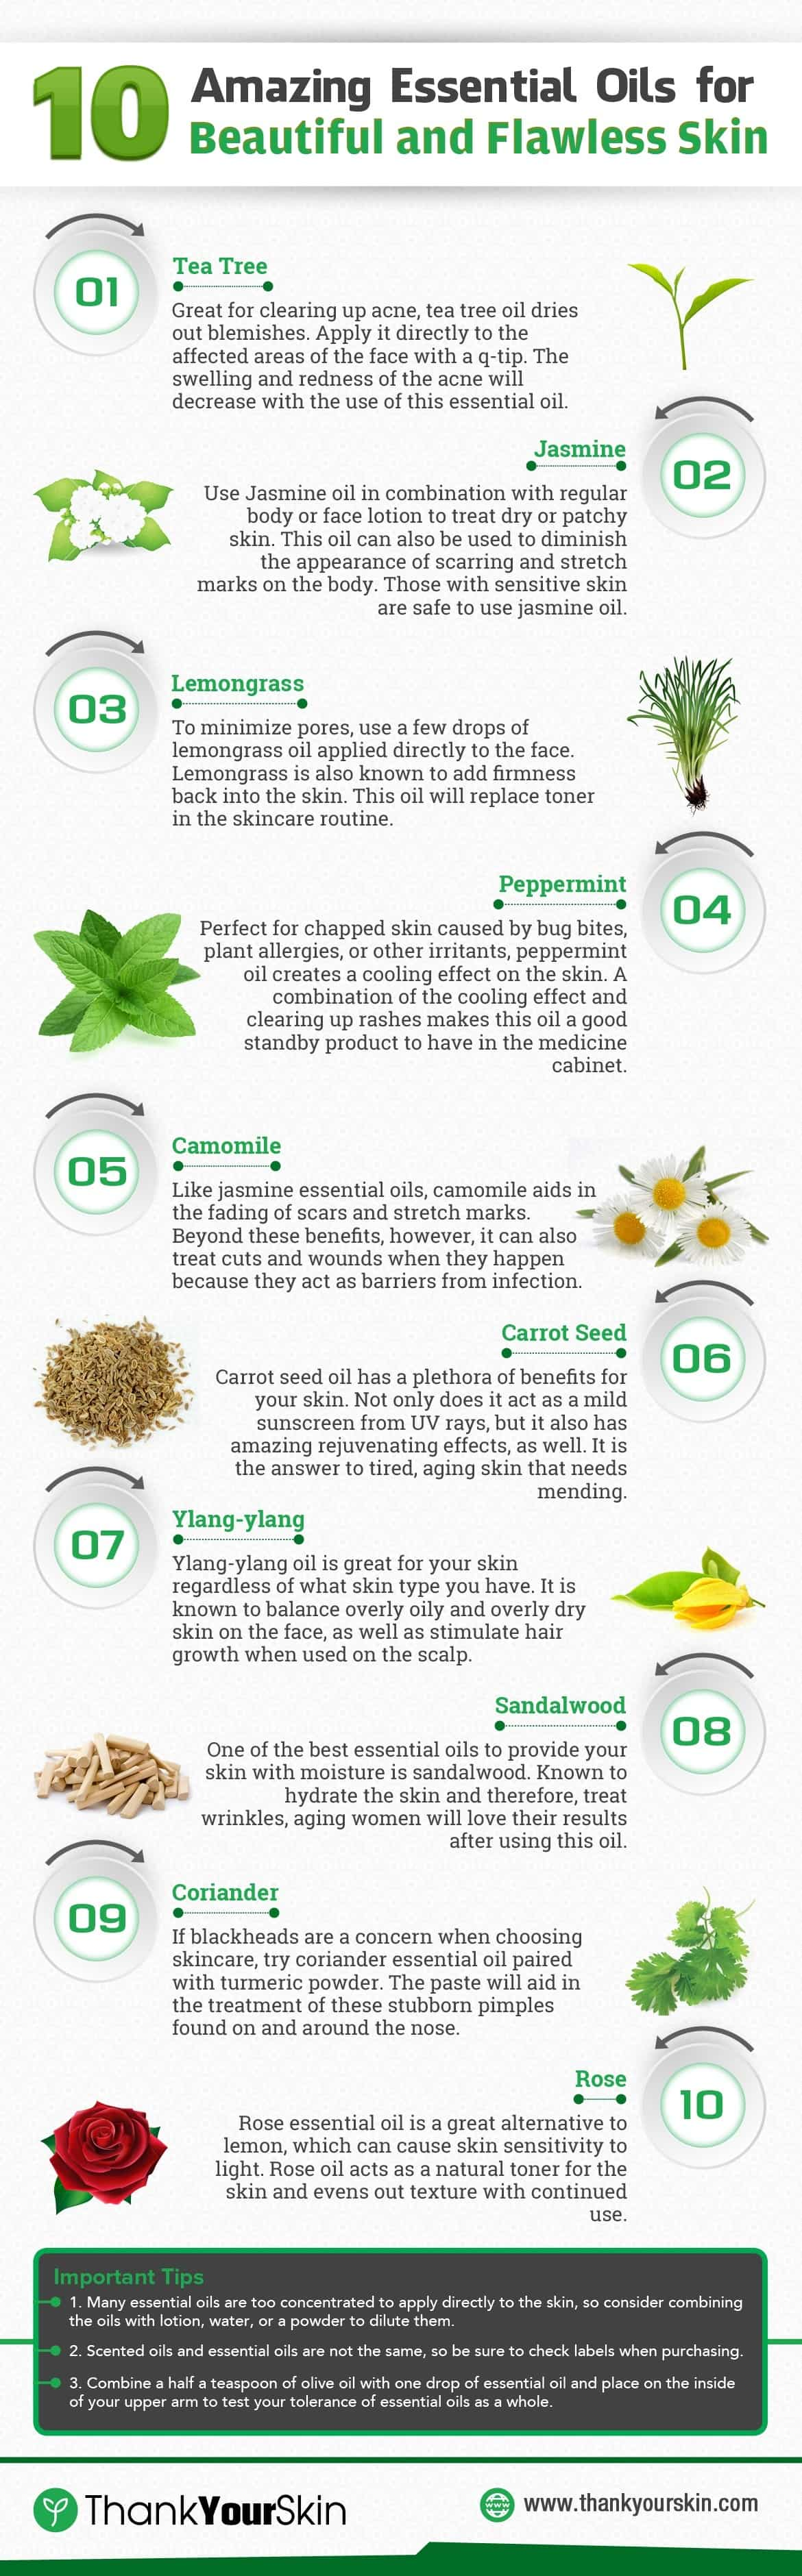 10 Amazing Essential Oils For Beautiful And Flawless Skin